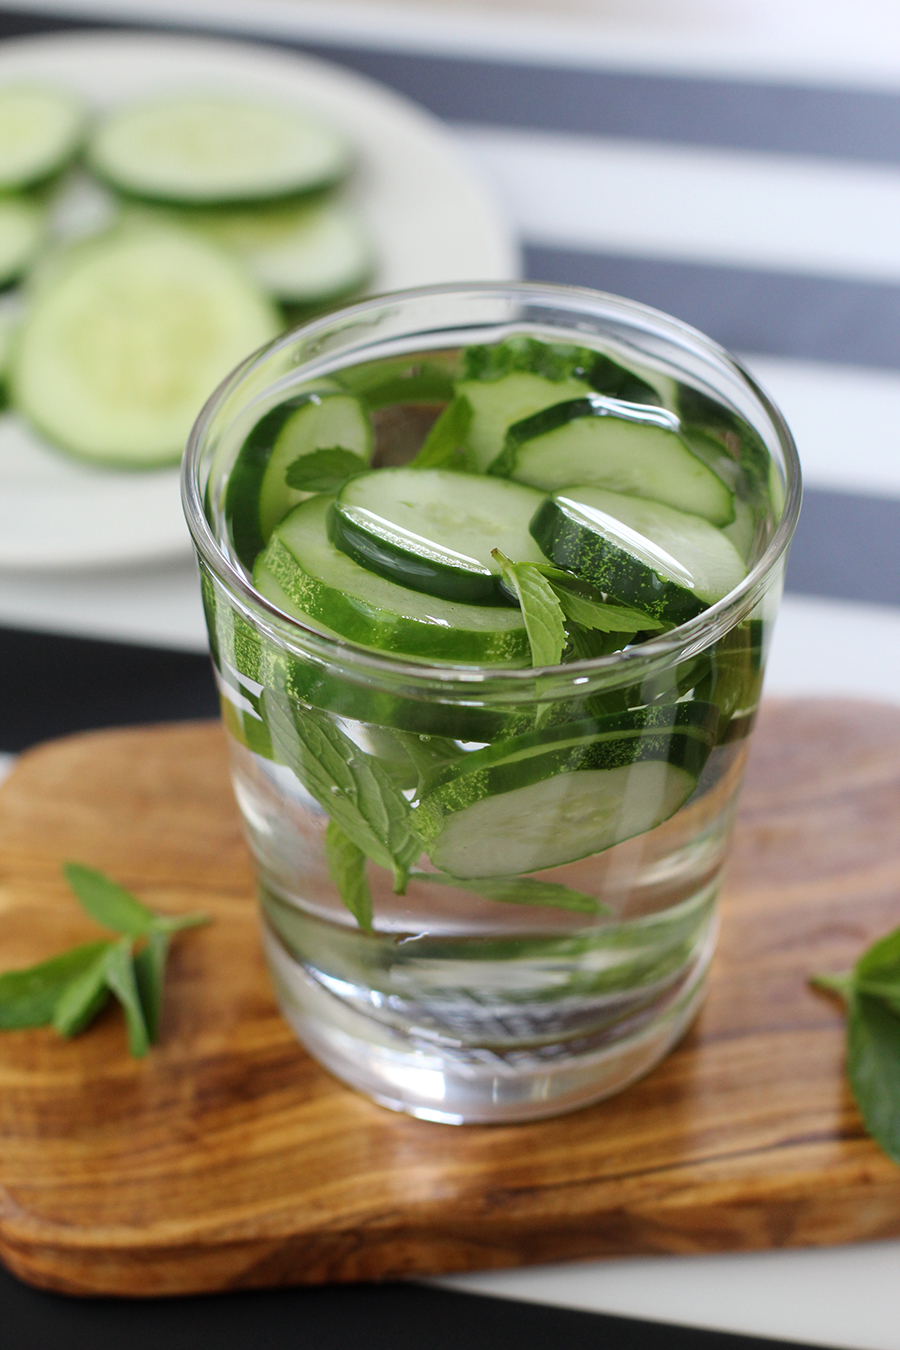 A refreshing summer drink, cucumber mint infused water.